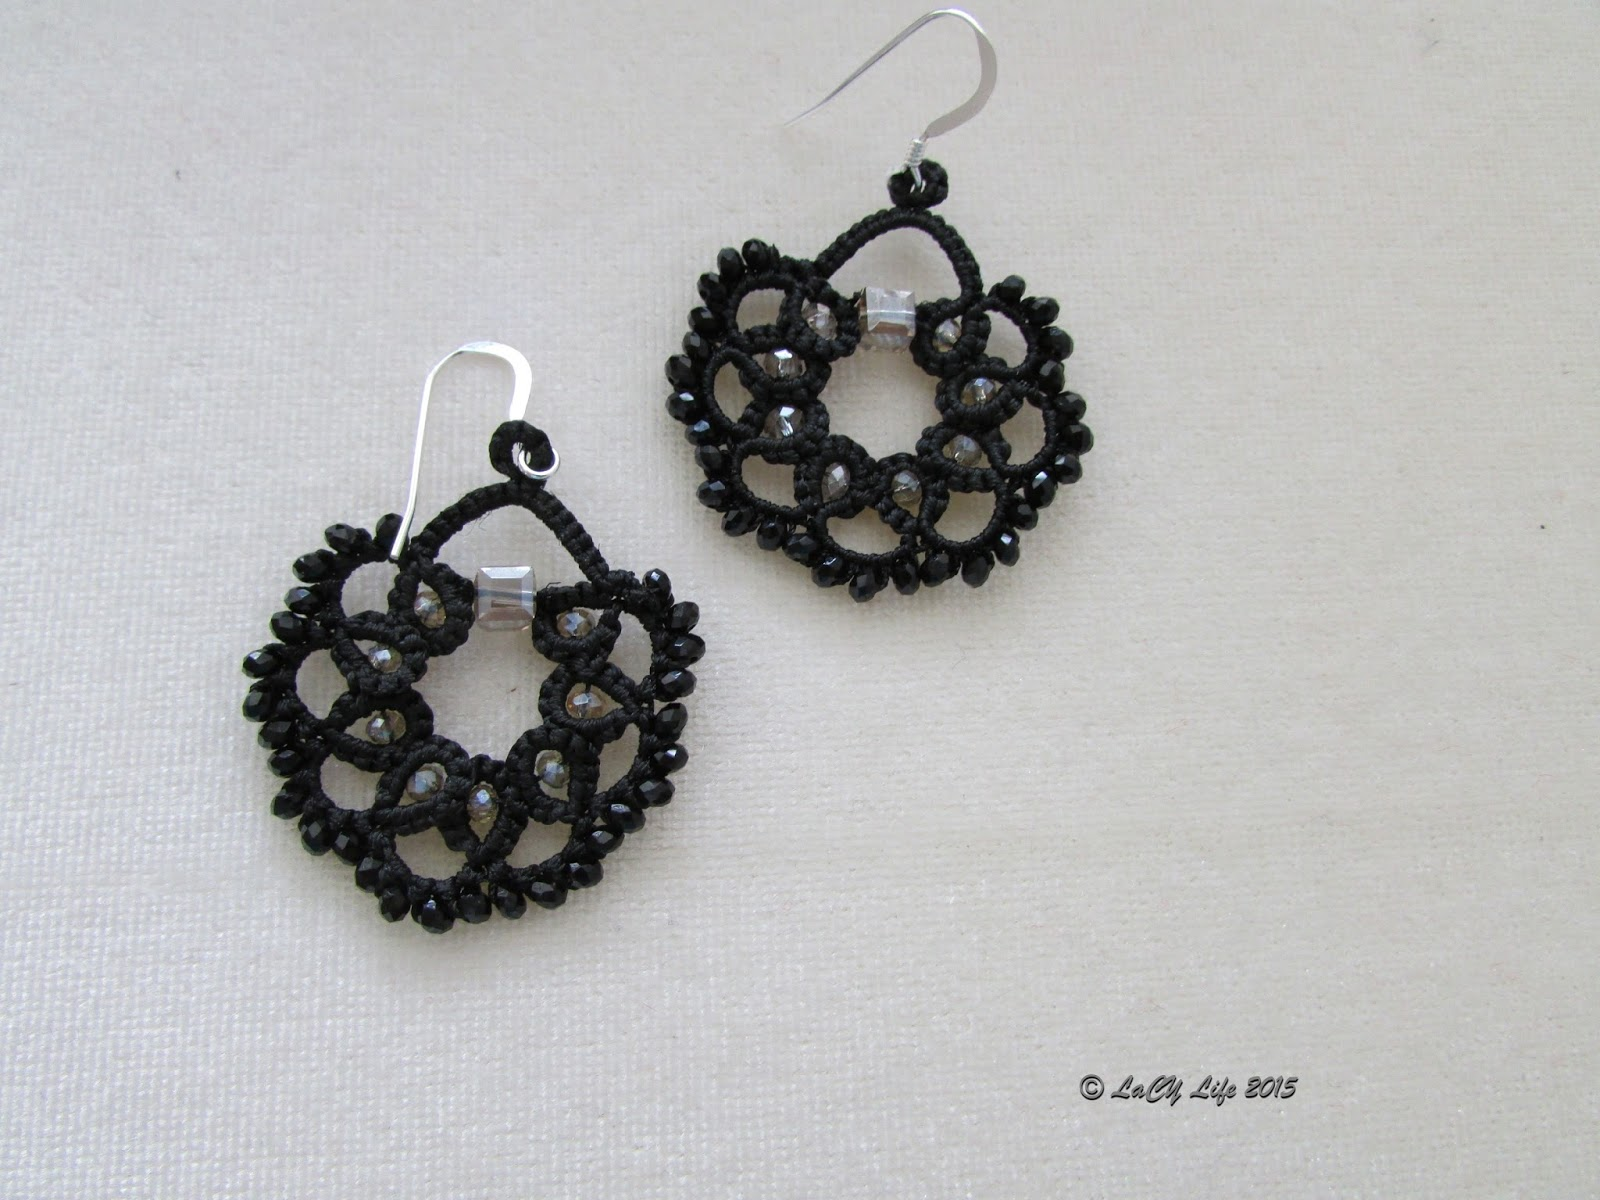 Lacy Life Shuttle Agate Black I Tatted The Earrings Using Polyester Thread You Can Find In My Etsy Shop Combined With Glass Beads And Crystals